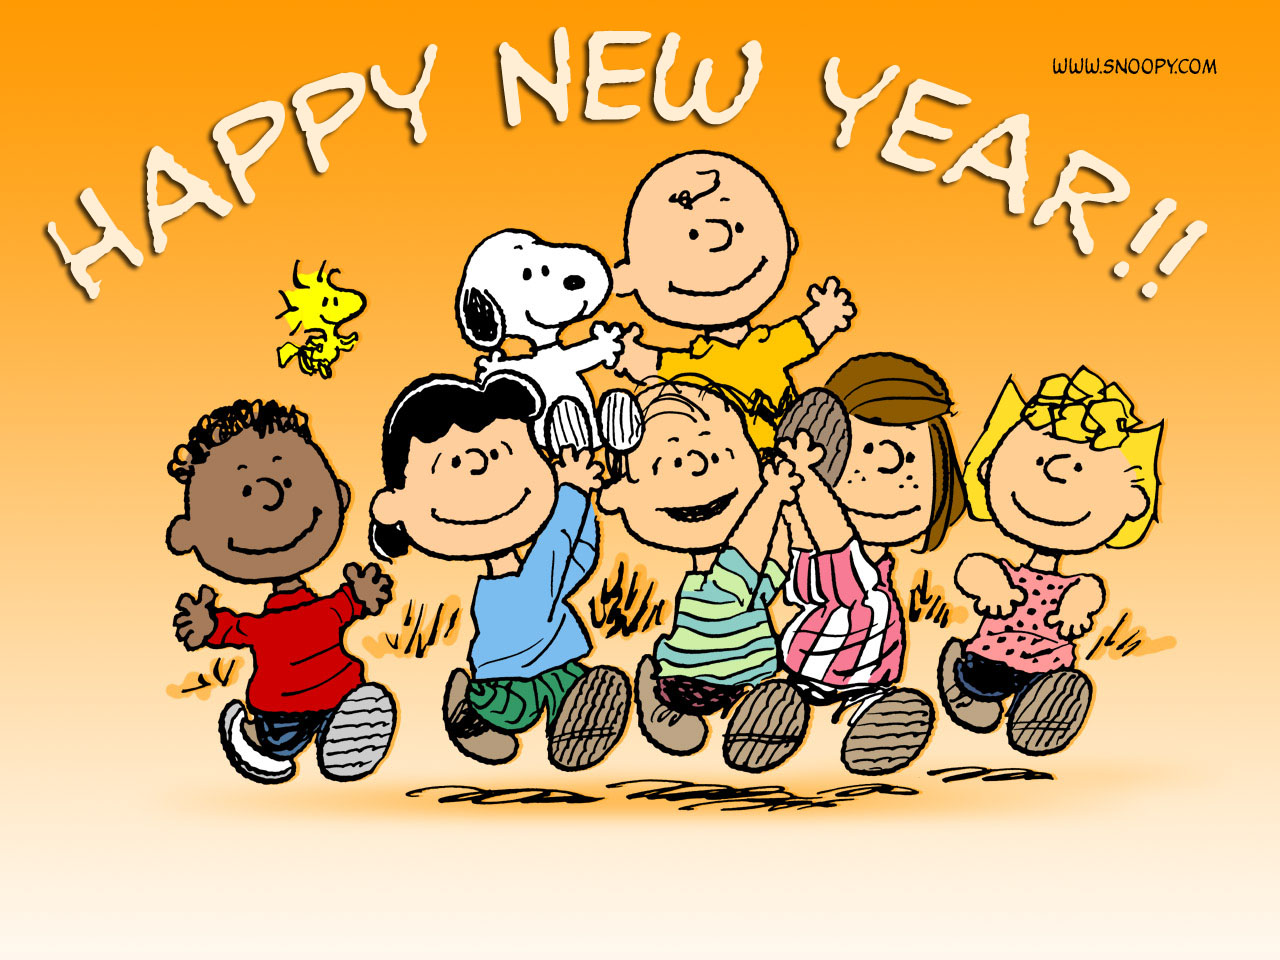 New Year clipart snoopy ╰☆╮ Brown!